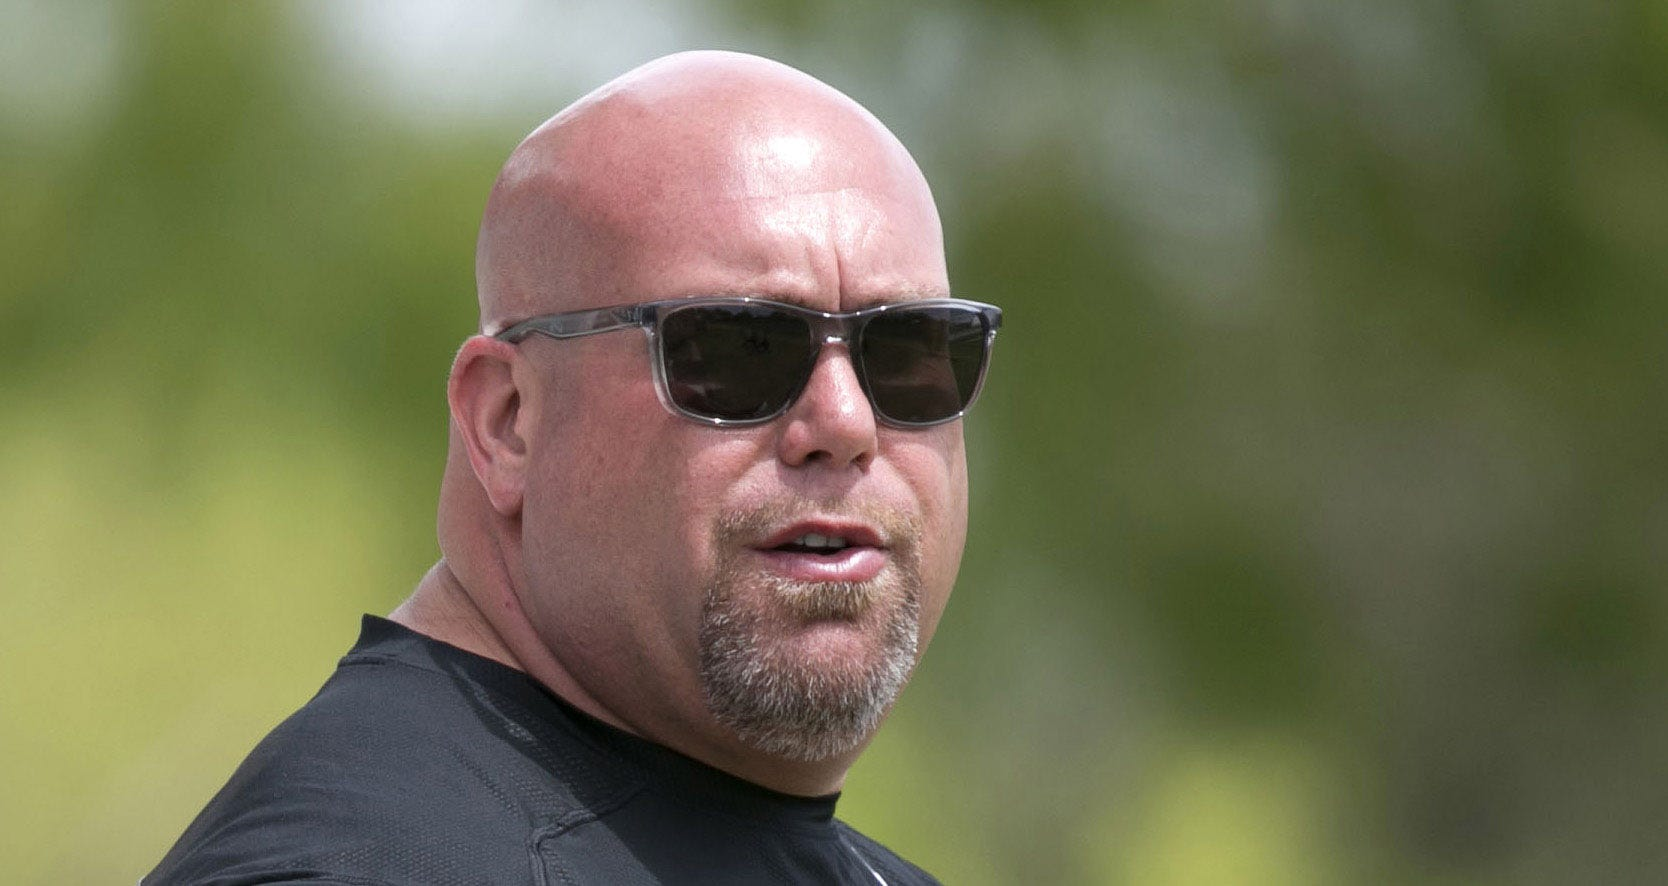 Steve Keim pleads guilty to extreme DUI, is suspended 5